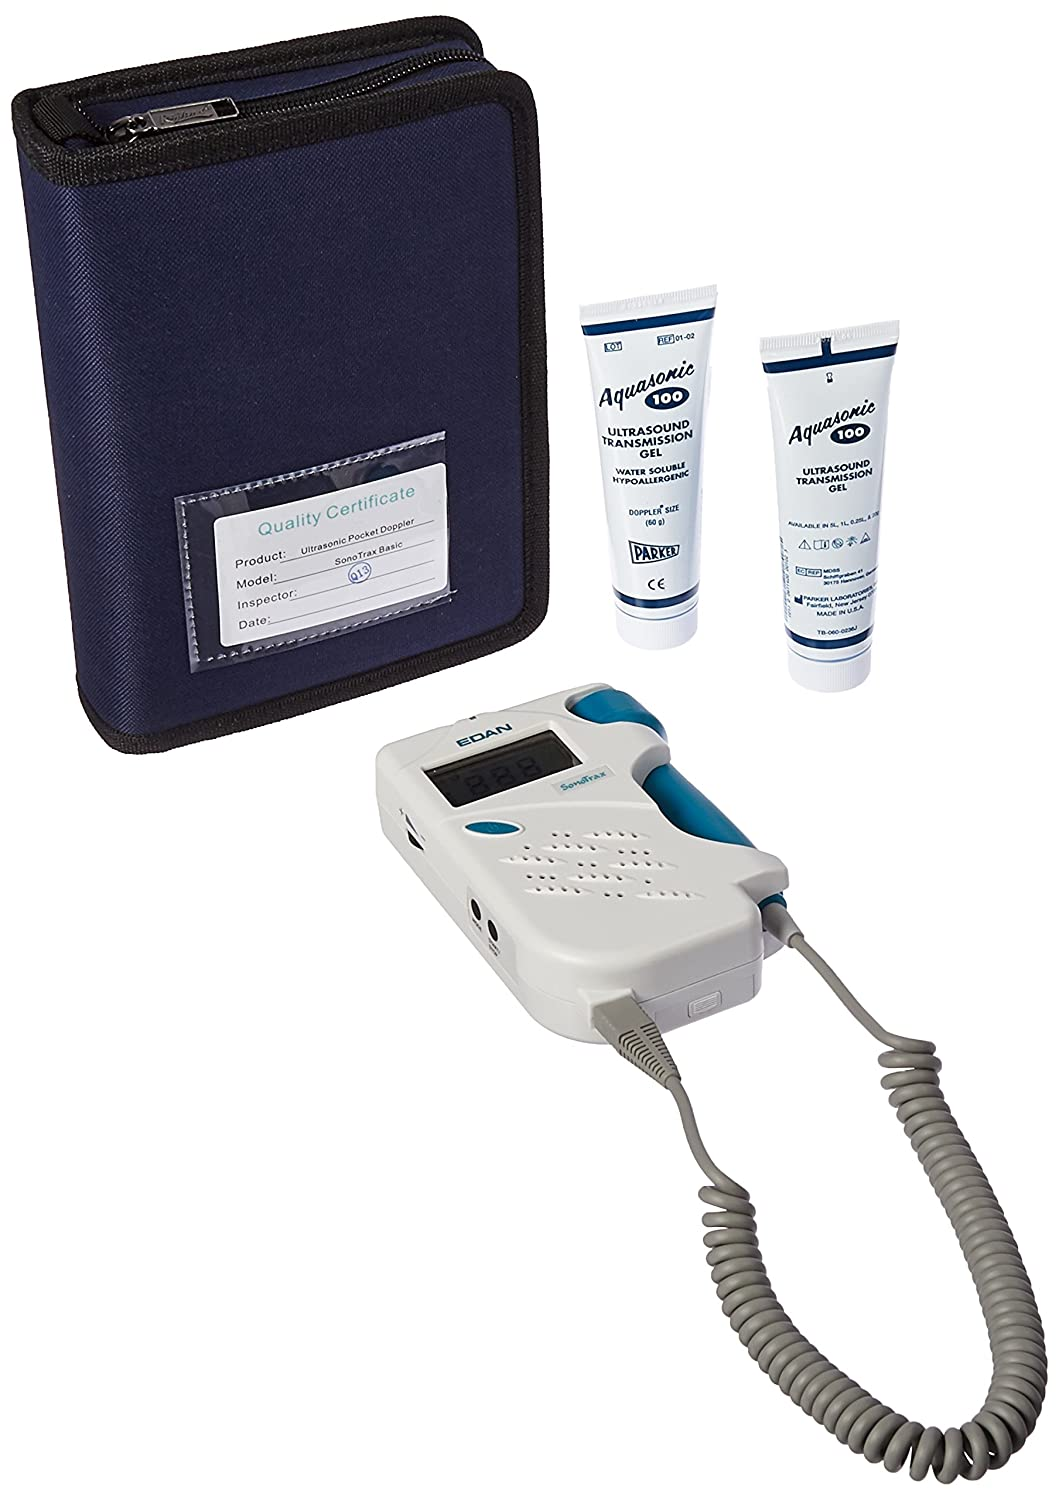 Edan Instruments Sonotrax 3MHZ Basic Fetal Doppler, Prenatal Heartbeat Monitor, LCD Display, 3 MHz